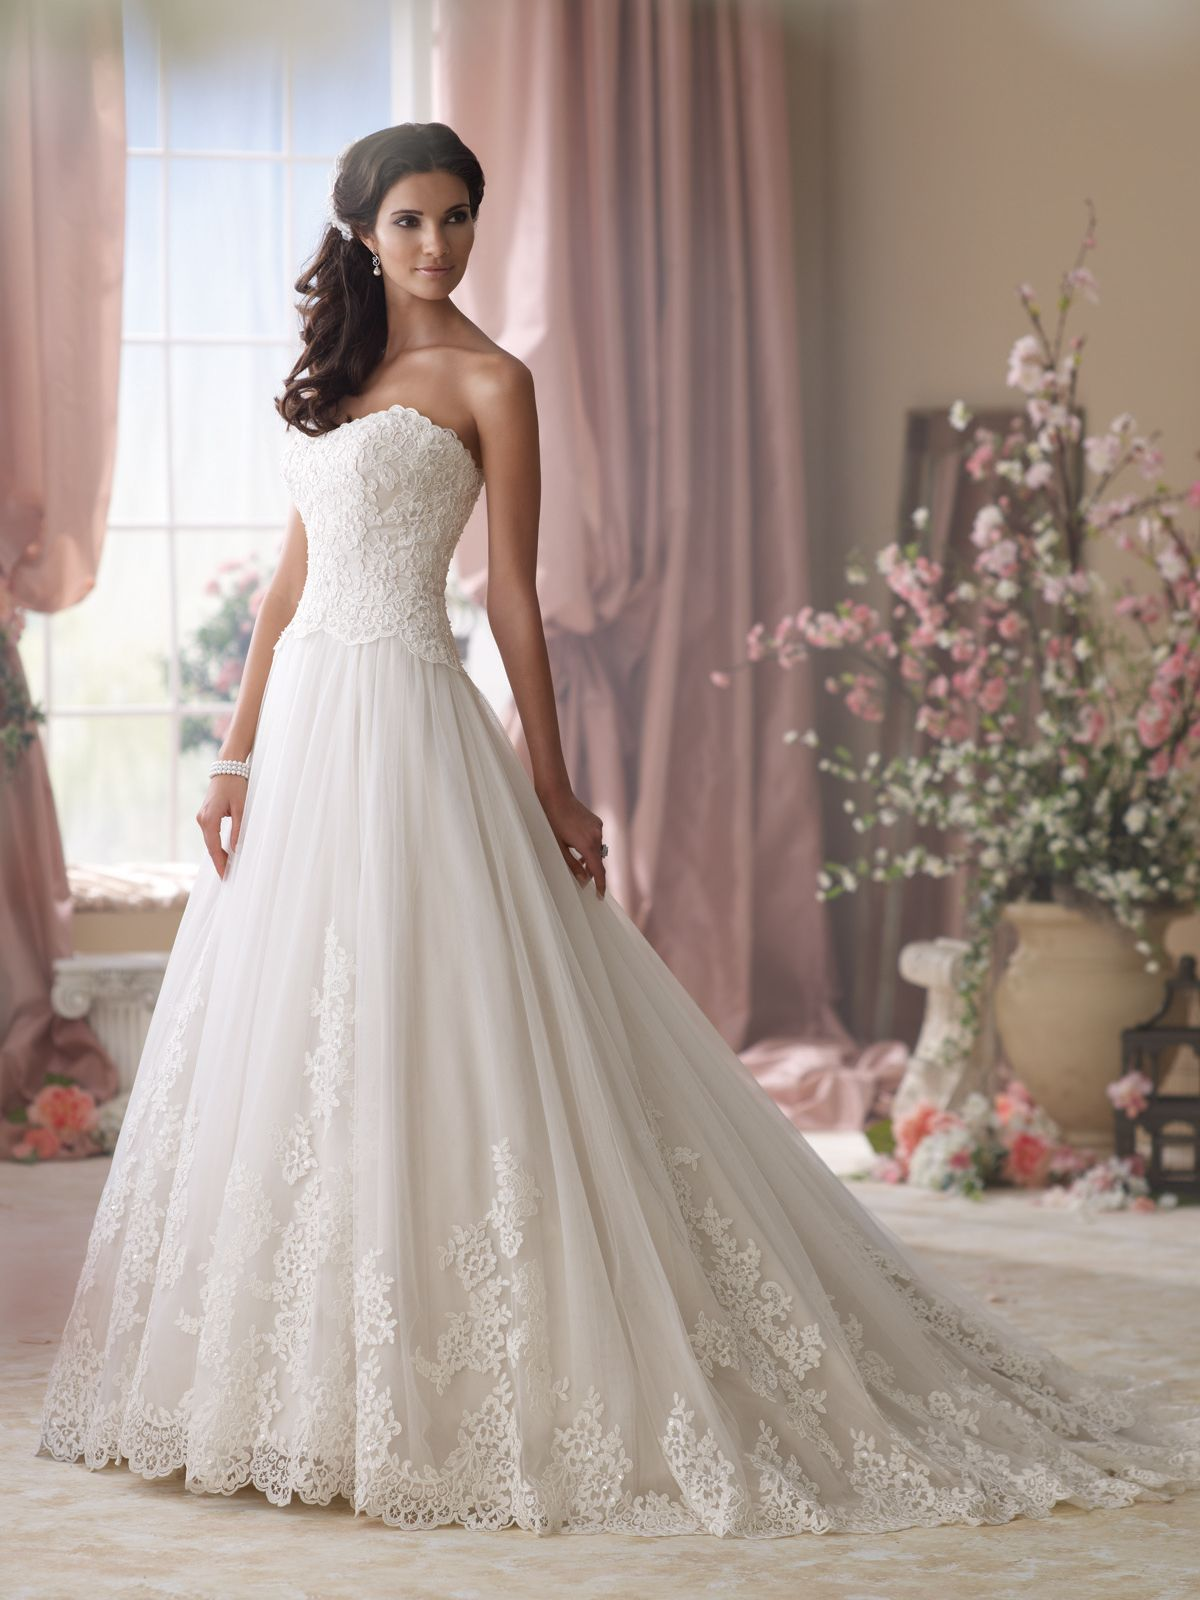 Wedding Dresses 2014 Collection – Strapless embroidered lace and tulle ball  gown wedding dress with scalloped sweetheart neckline 7da86caca